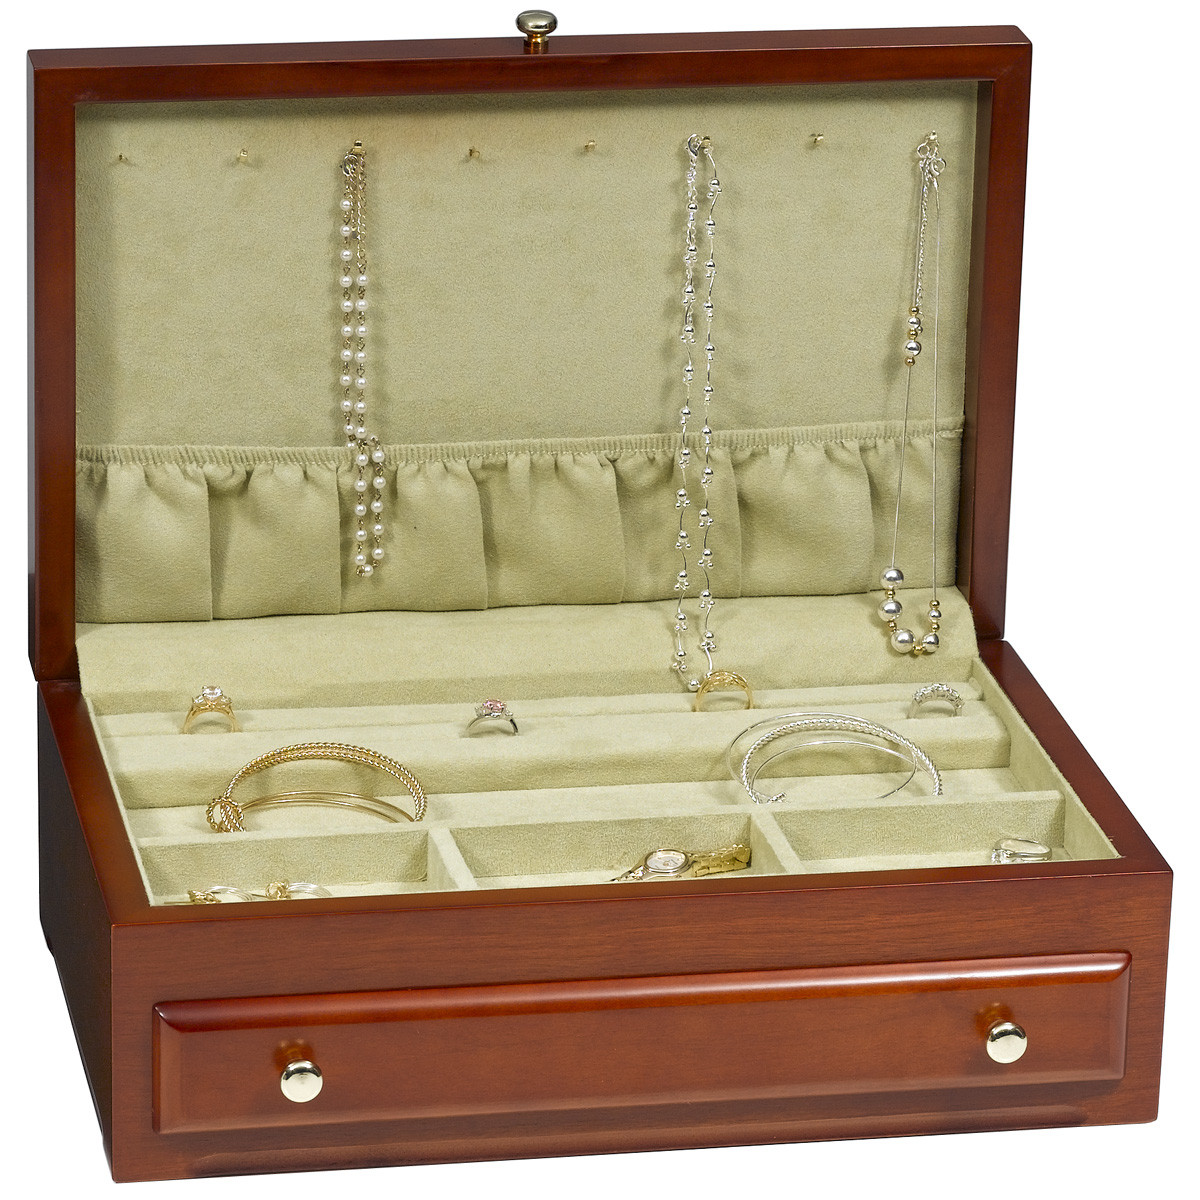 Cherry Jewelry Box Handcrafted by Reed and Barton